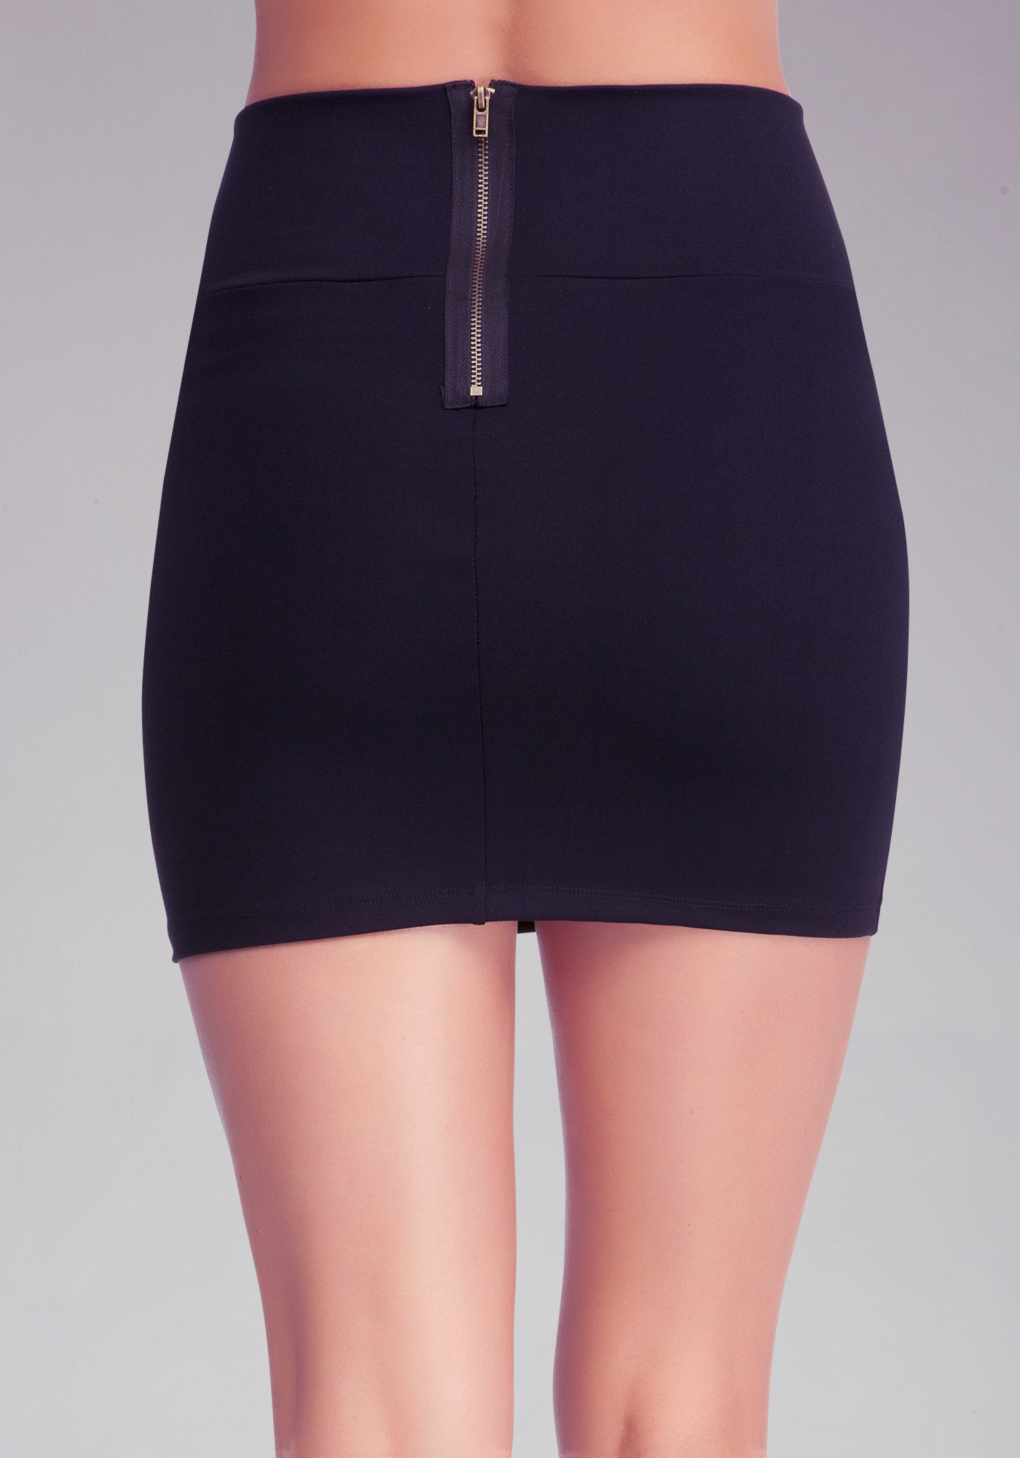 Bebe High Waist Mini Skirt in Black | Lyst